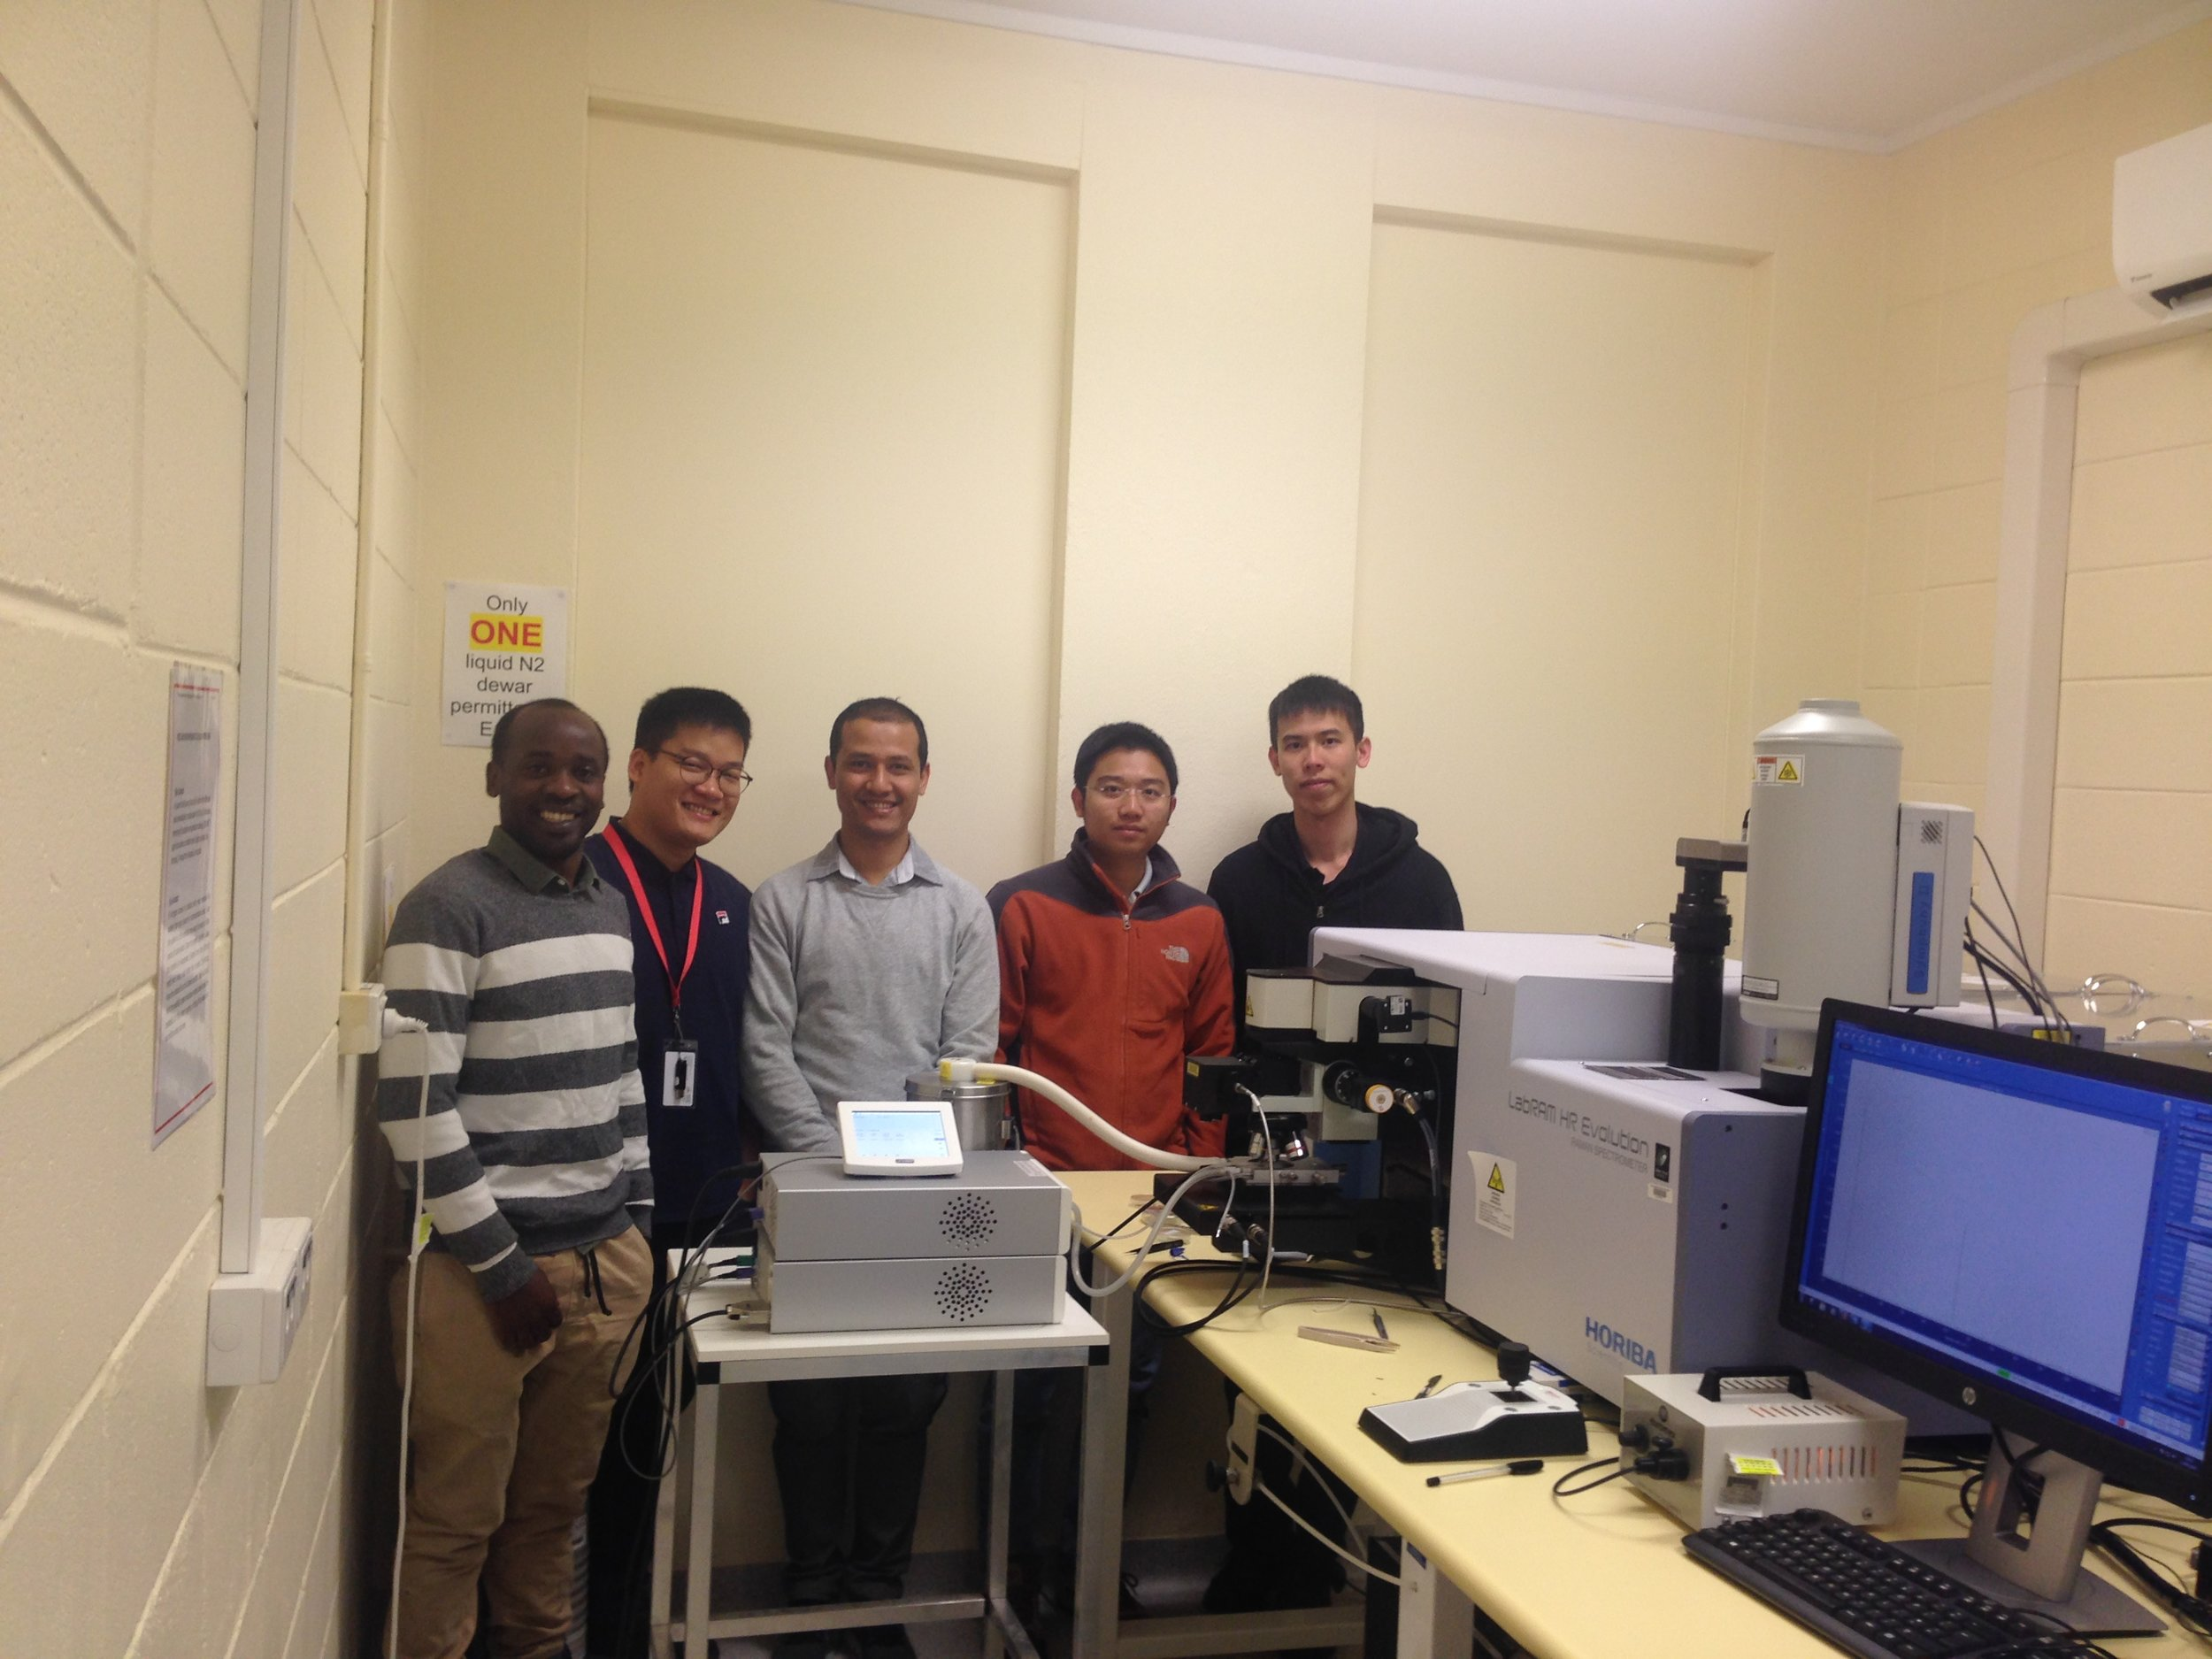 Caption 1: Dr Hieu Nguyen (second right) and PhD students Mike Tebyetekerwa (first left), Thien Truong (second left), Rabin Basnet (third left) and honour student Zhuofeng Li (far right).